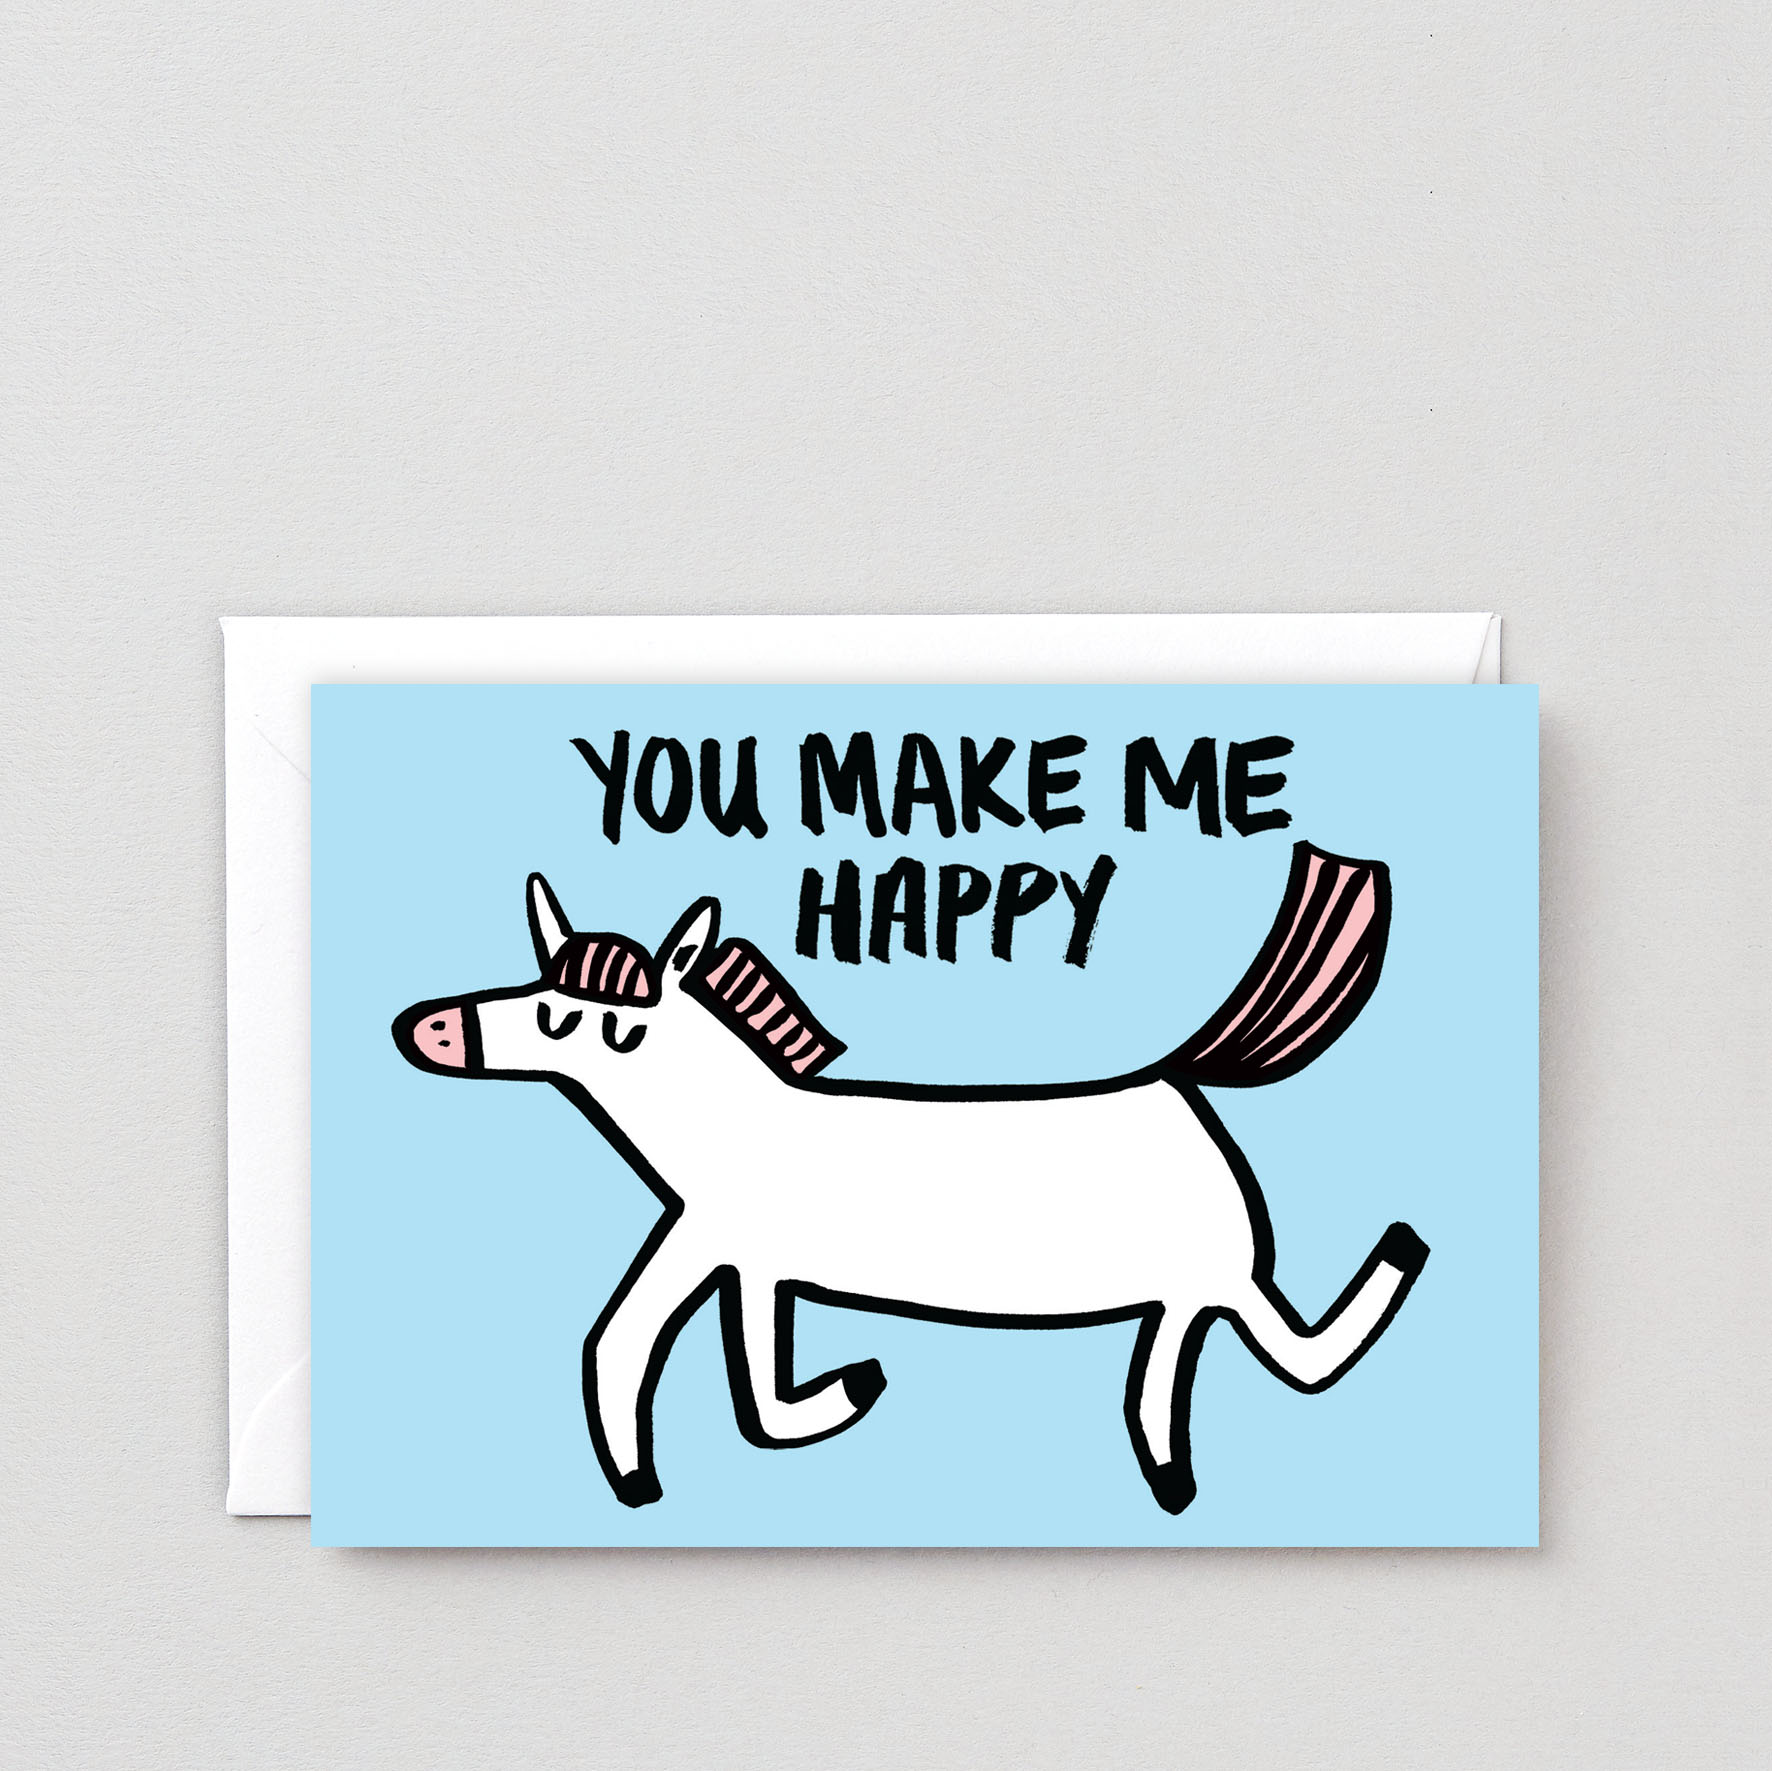 you make me happy card.jpg